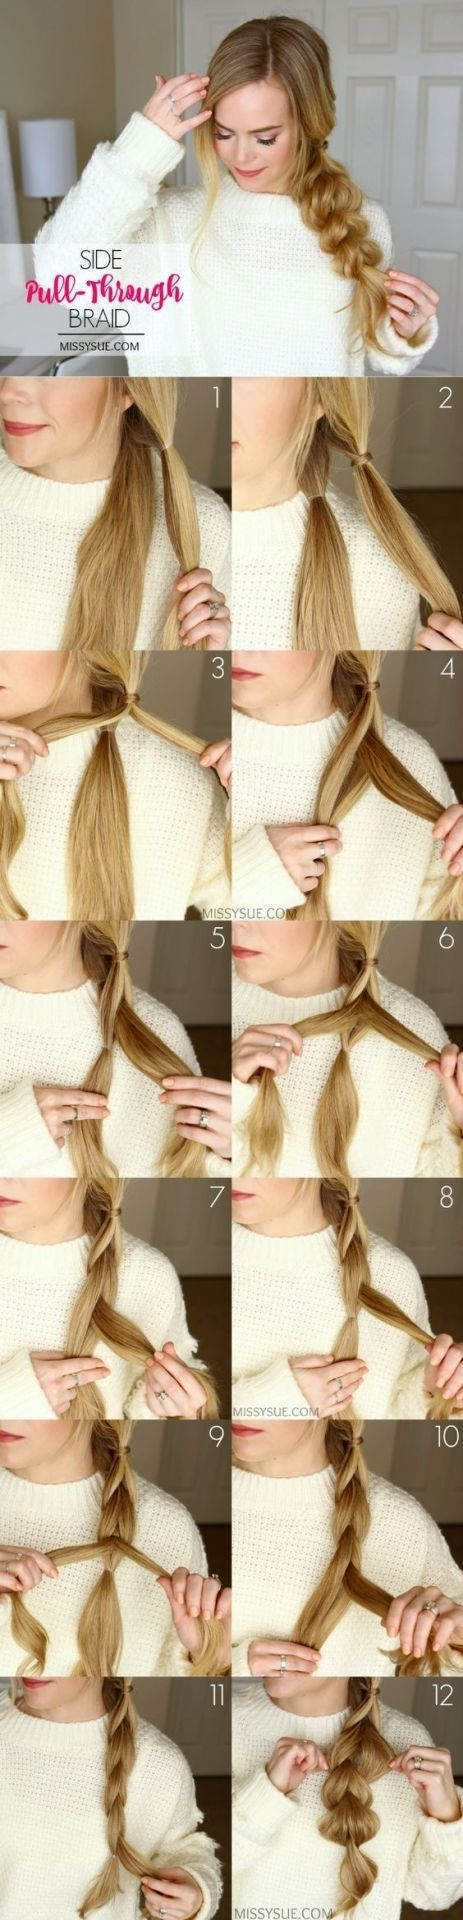 Casual Look Haare Go Through The Pigtail Tutorial Hair Tutorial For A Playful